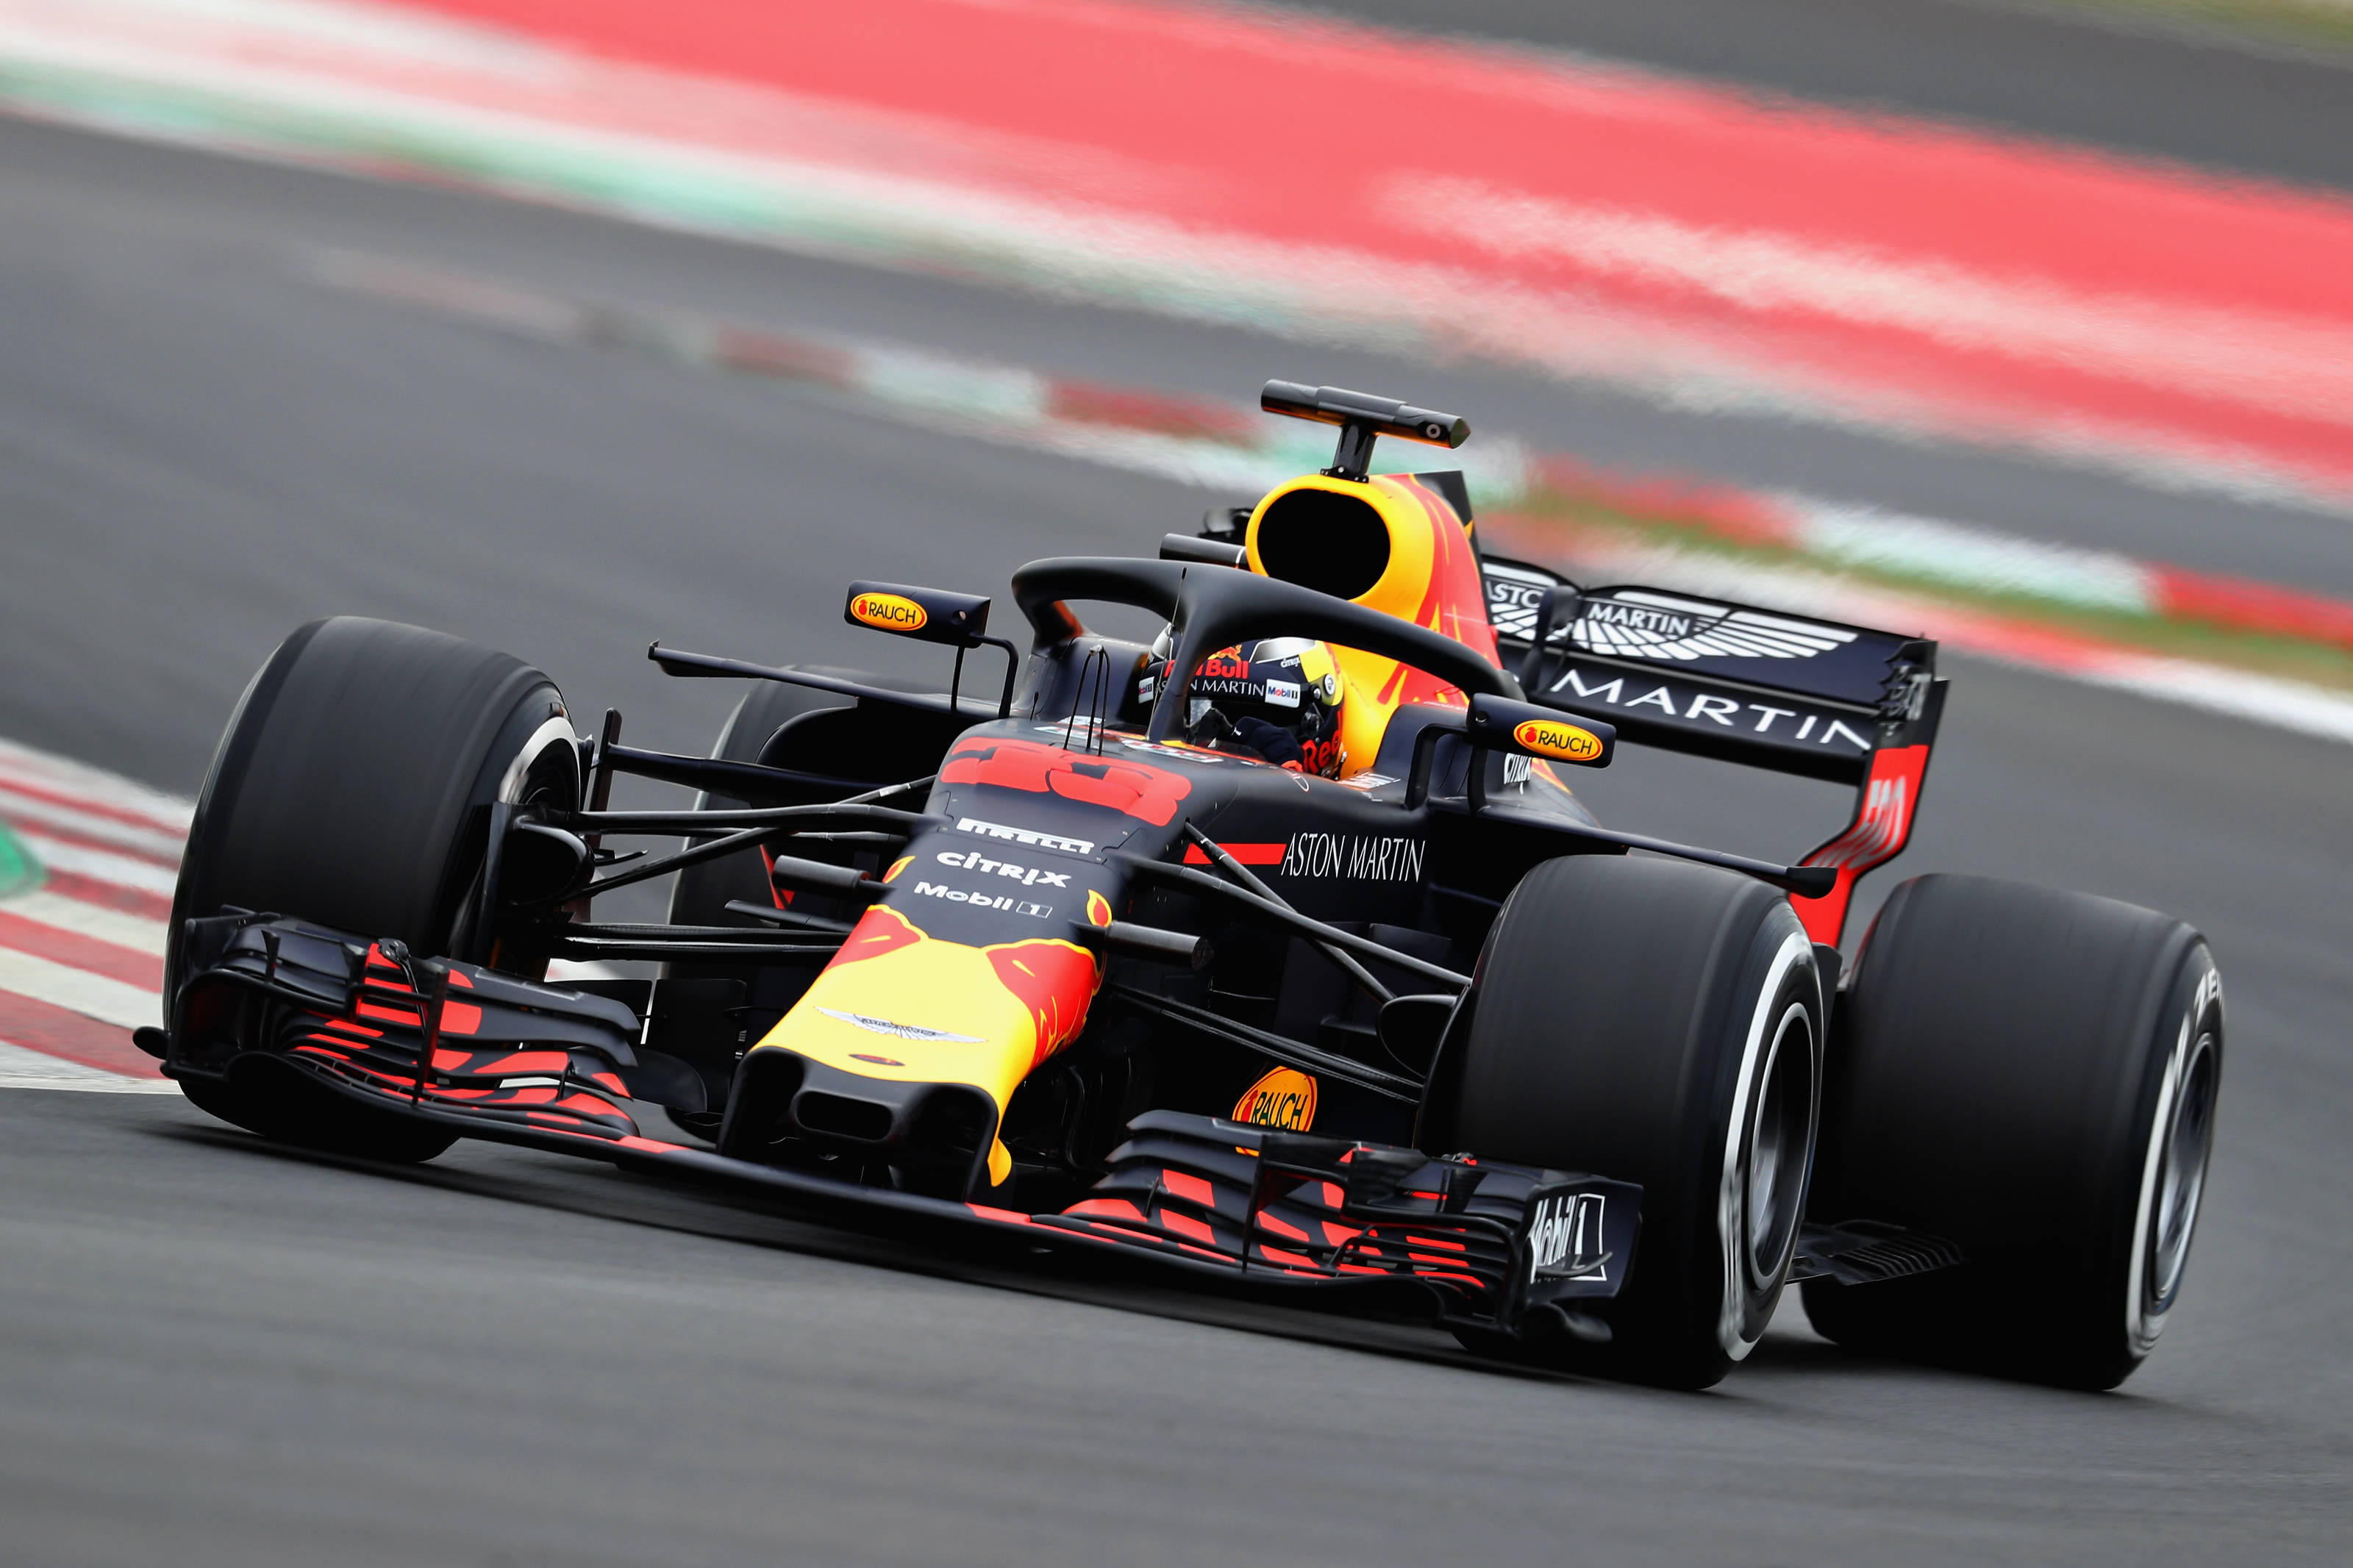 formula 1 winter testing quotes and images from barcelona asc action sports connection. Black Bedroom Furniture Sets. Home Design Ideas